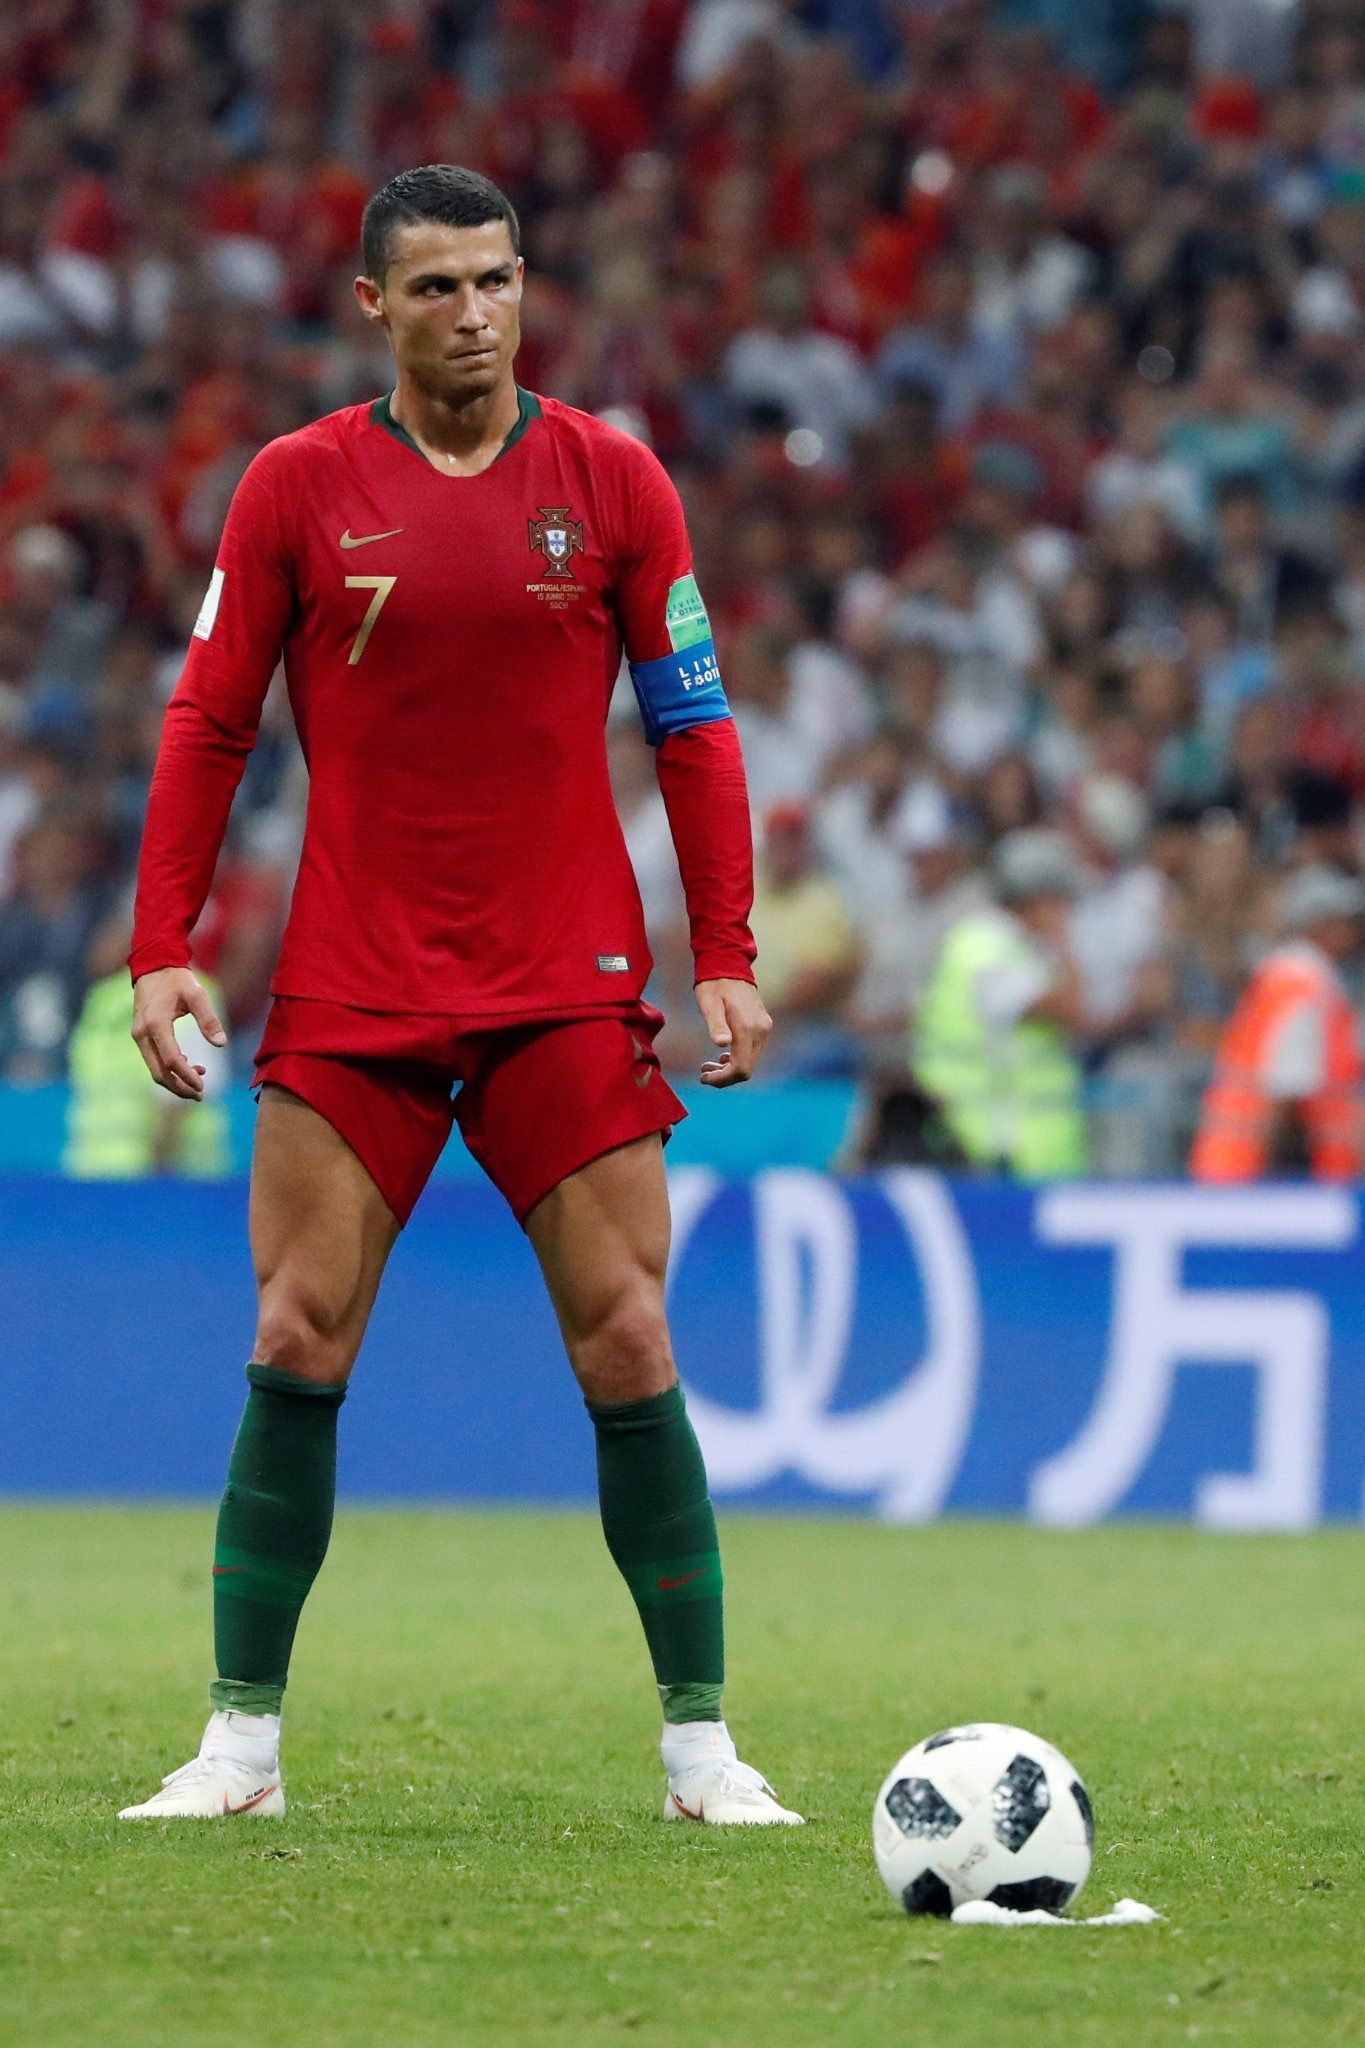 Pin by Sifat niloy on Fifa World Cup 2018 Cristiano